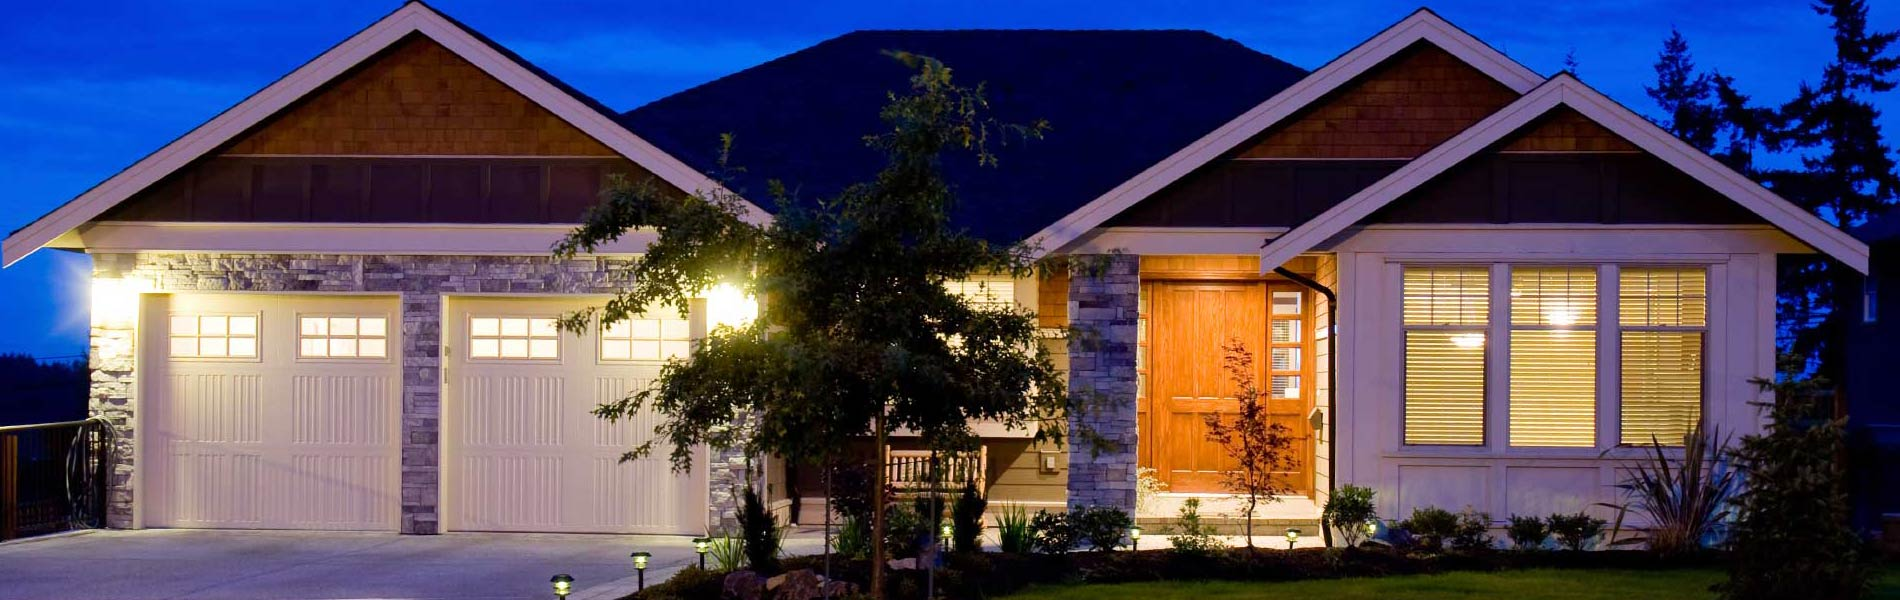 Community Garage Door Service, Highlands Ranch, CO 303-653-9208